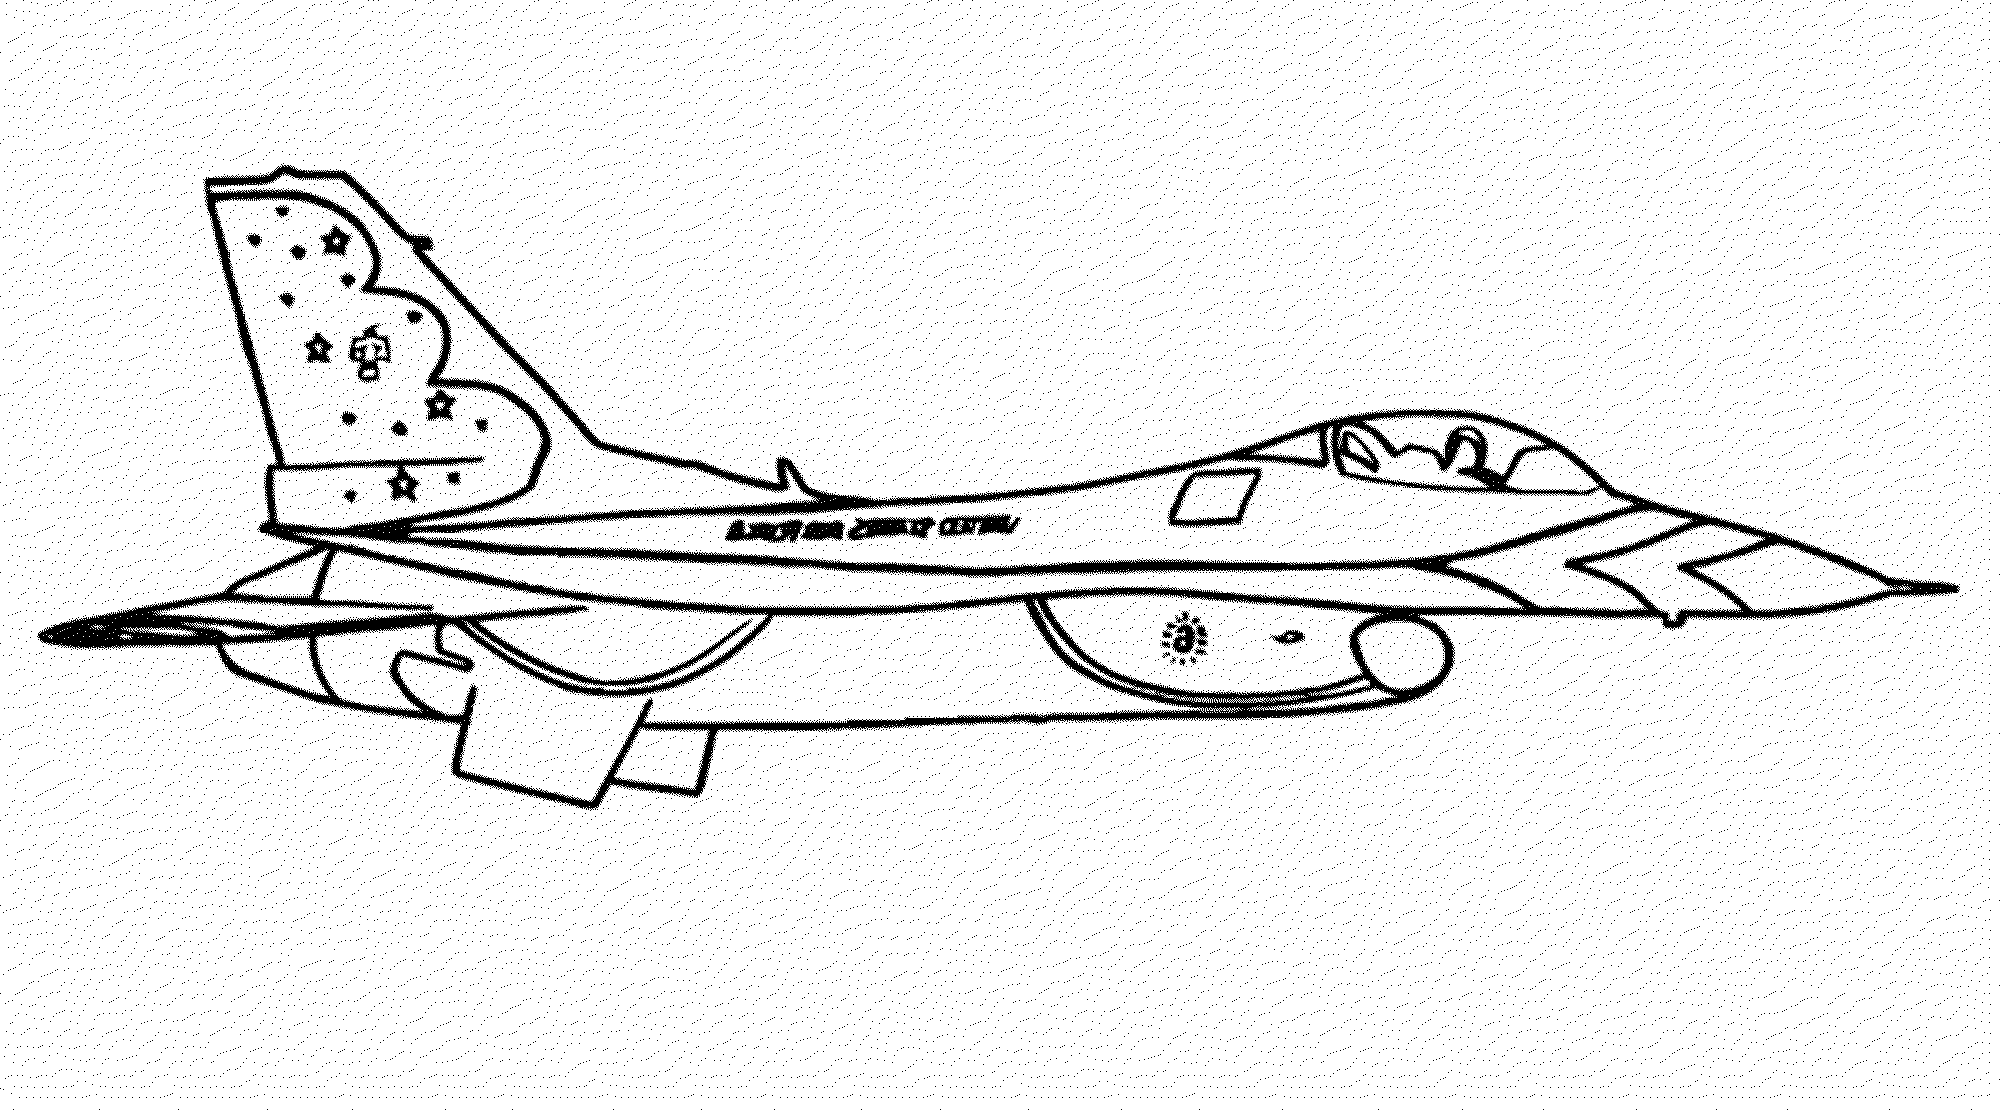 coloring pages planes free printable airplane coloring pages for kids cool2bkids pages planes coloring